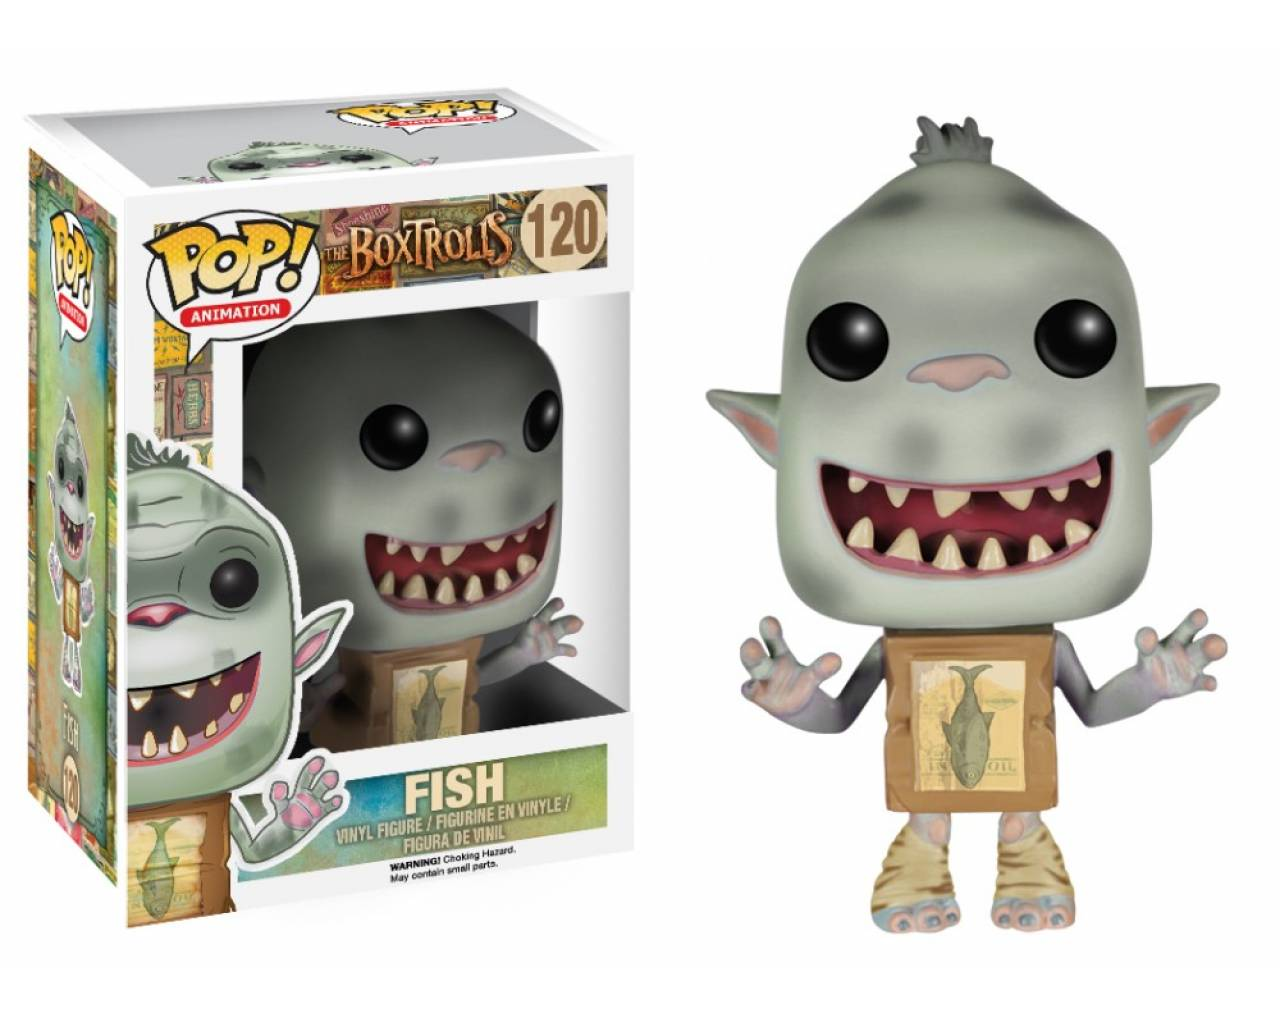 Fish (Vaulted) Pop! Vinyl